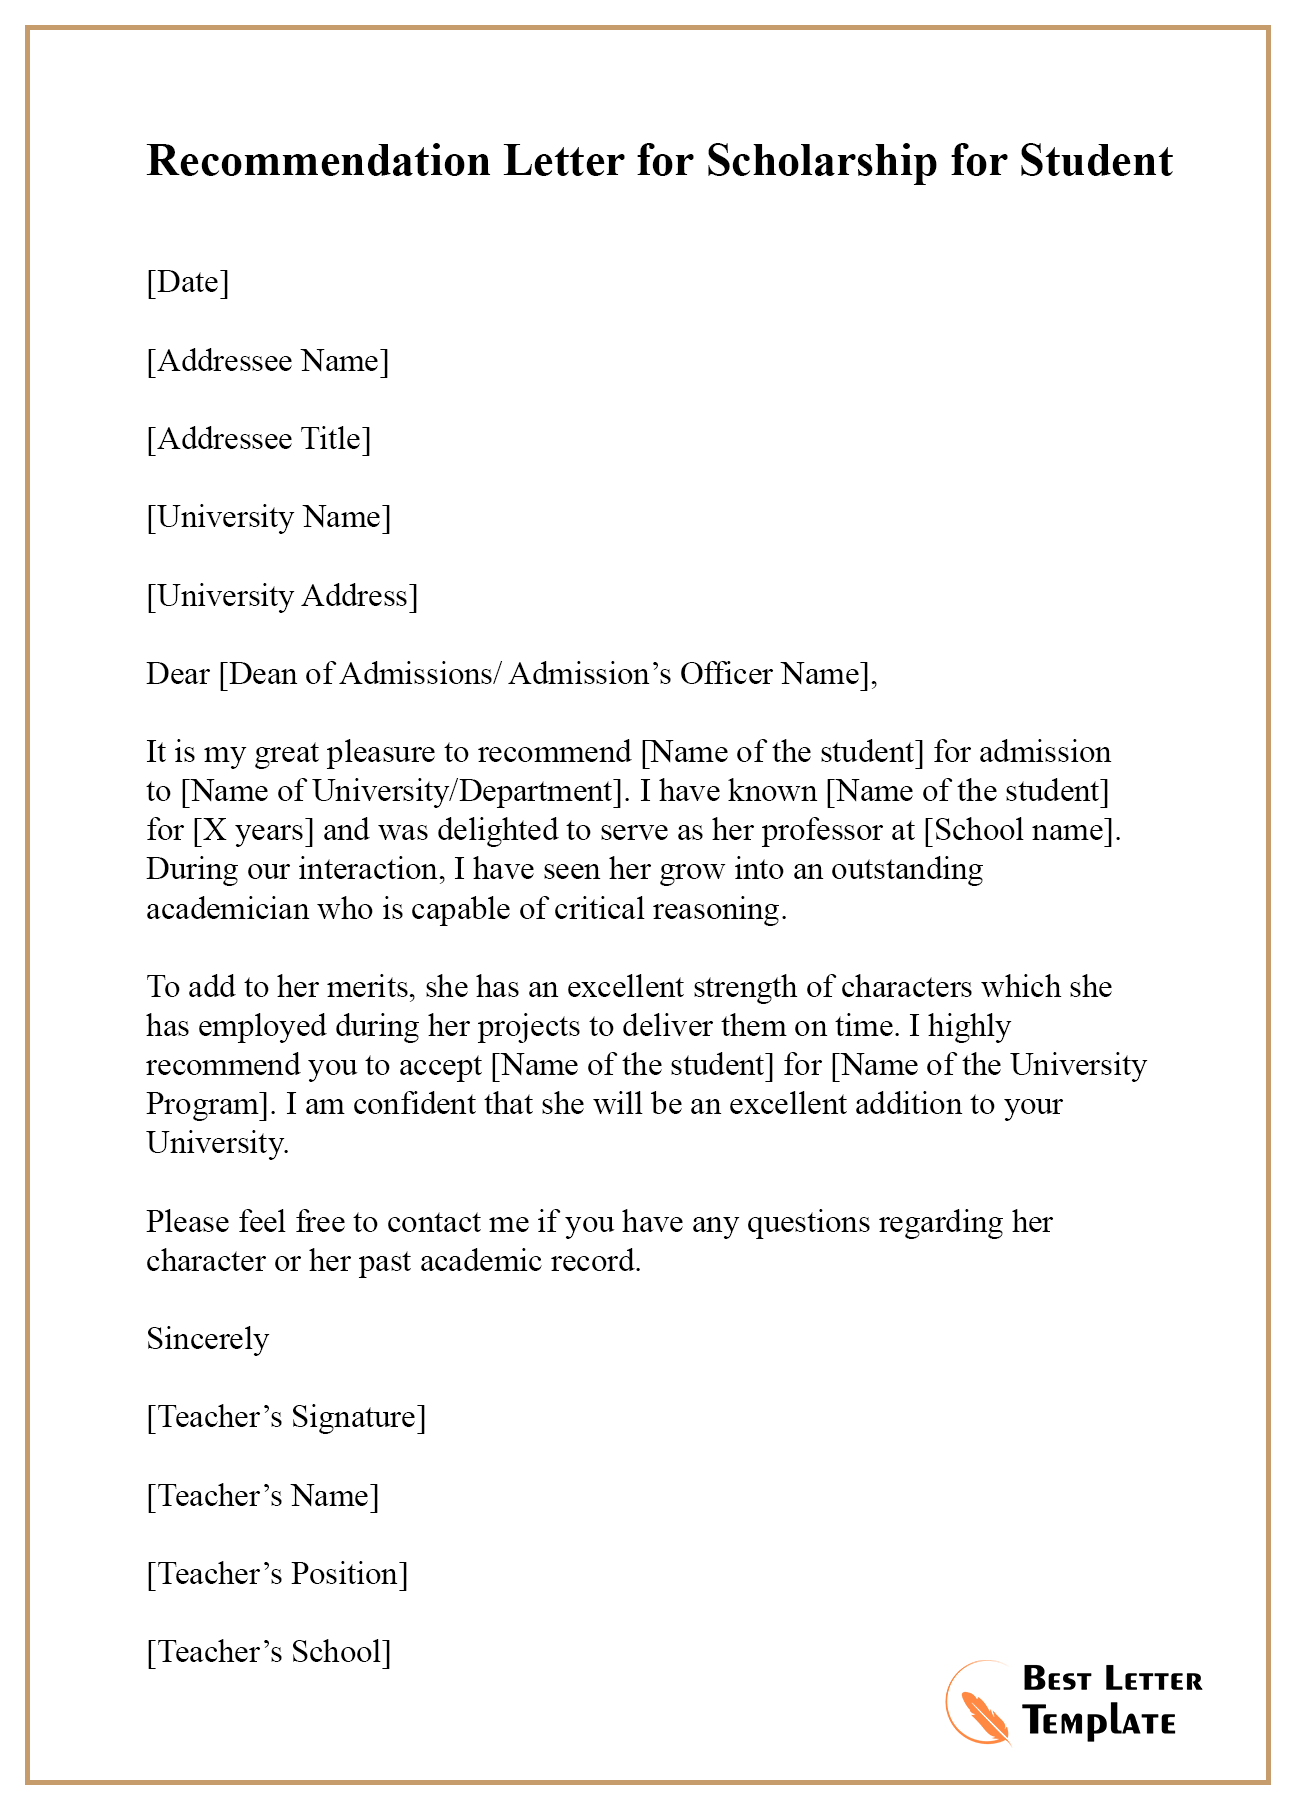 Letter Of Recommendation For Student Scholarship From ...